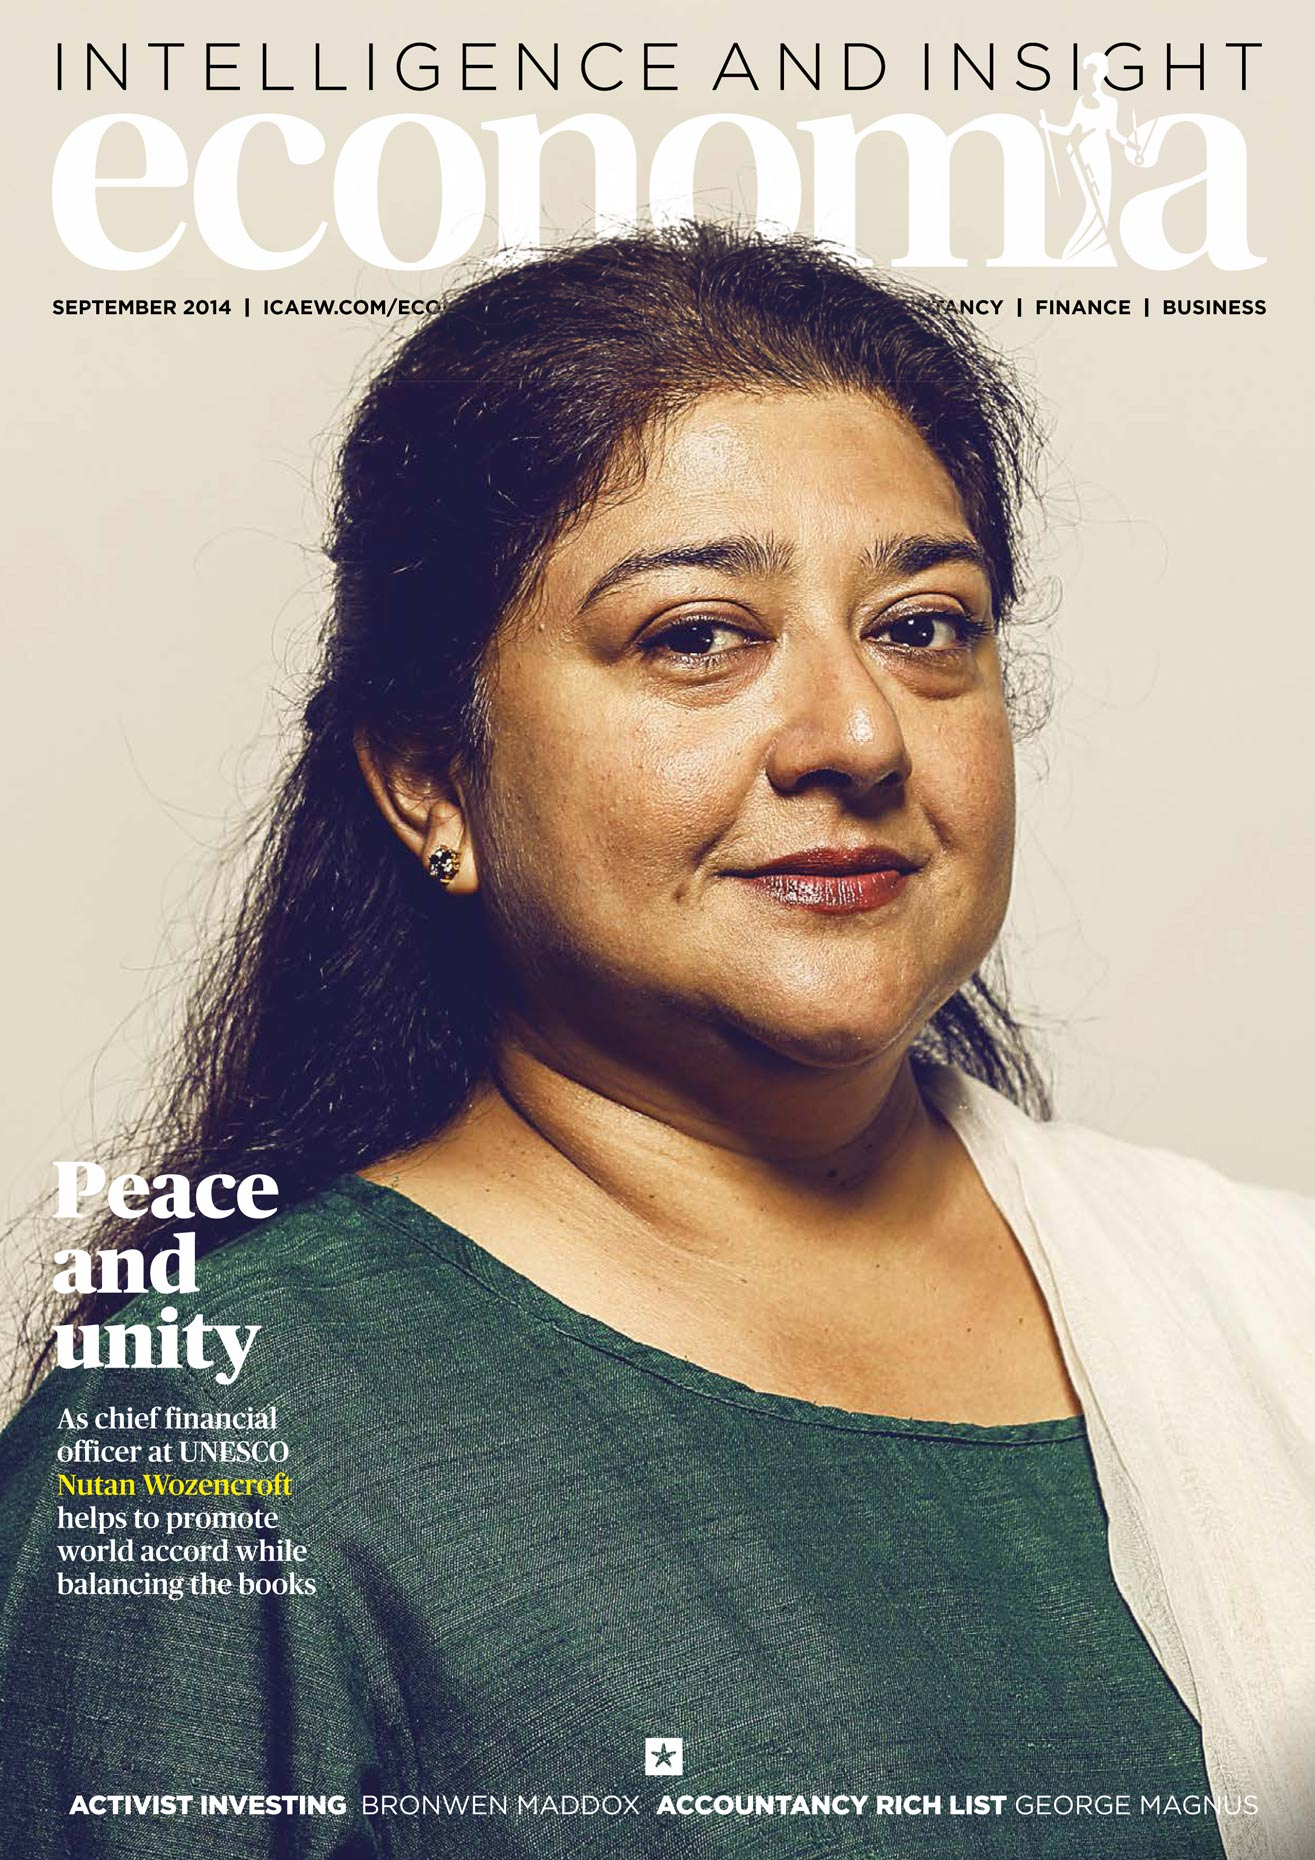 For Economia - Chief Financial Officer of UNESCO, Nutan Wozencroft.